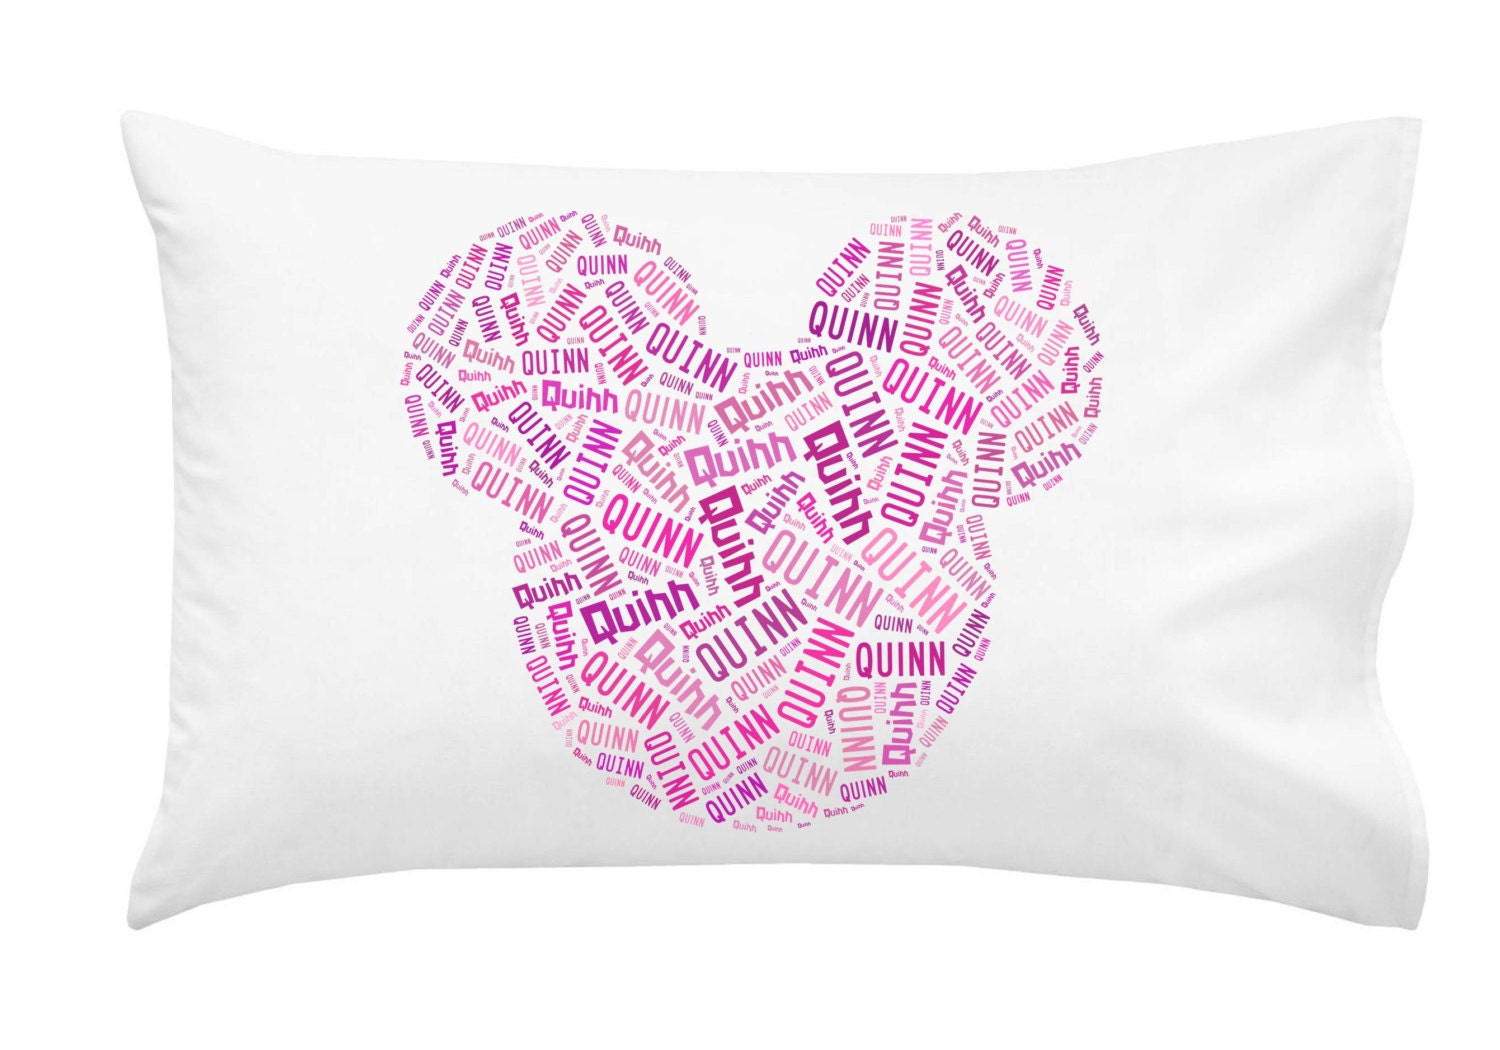 disney gift ideas - pillow for autographs